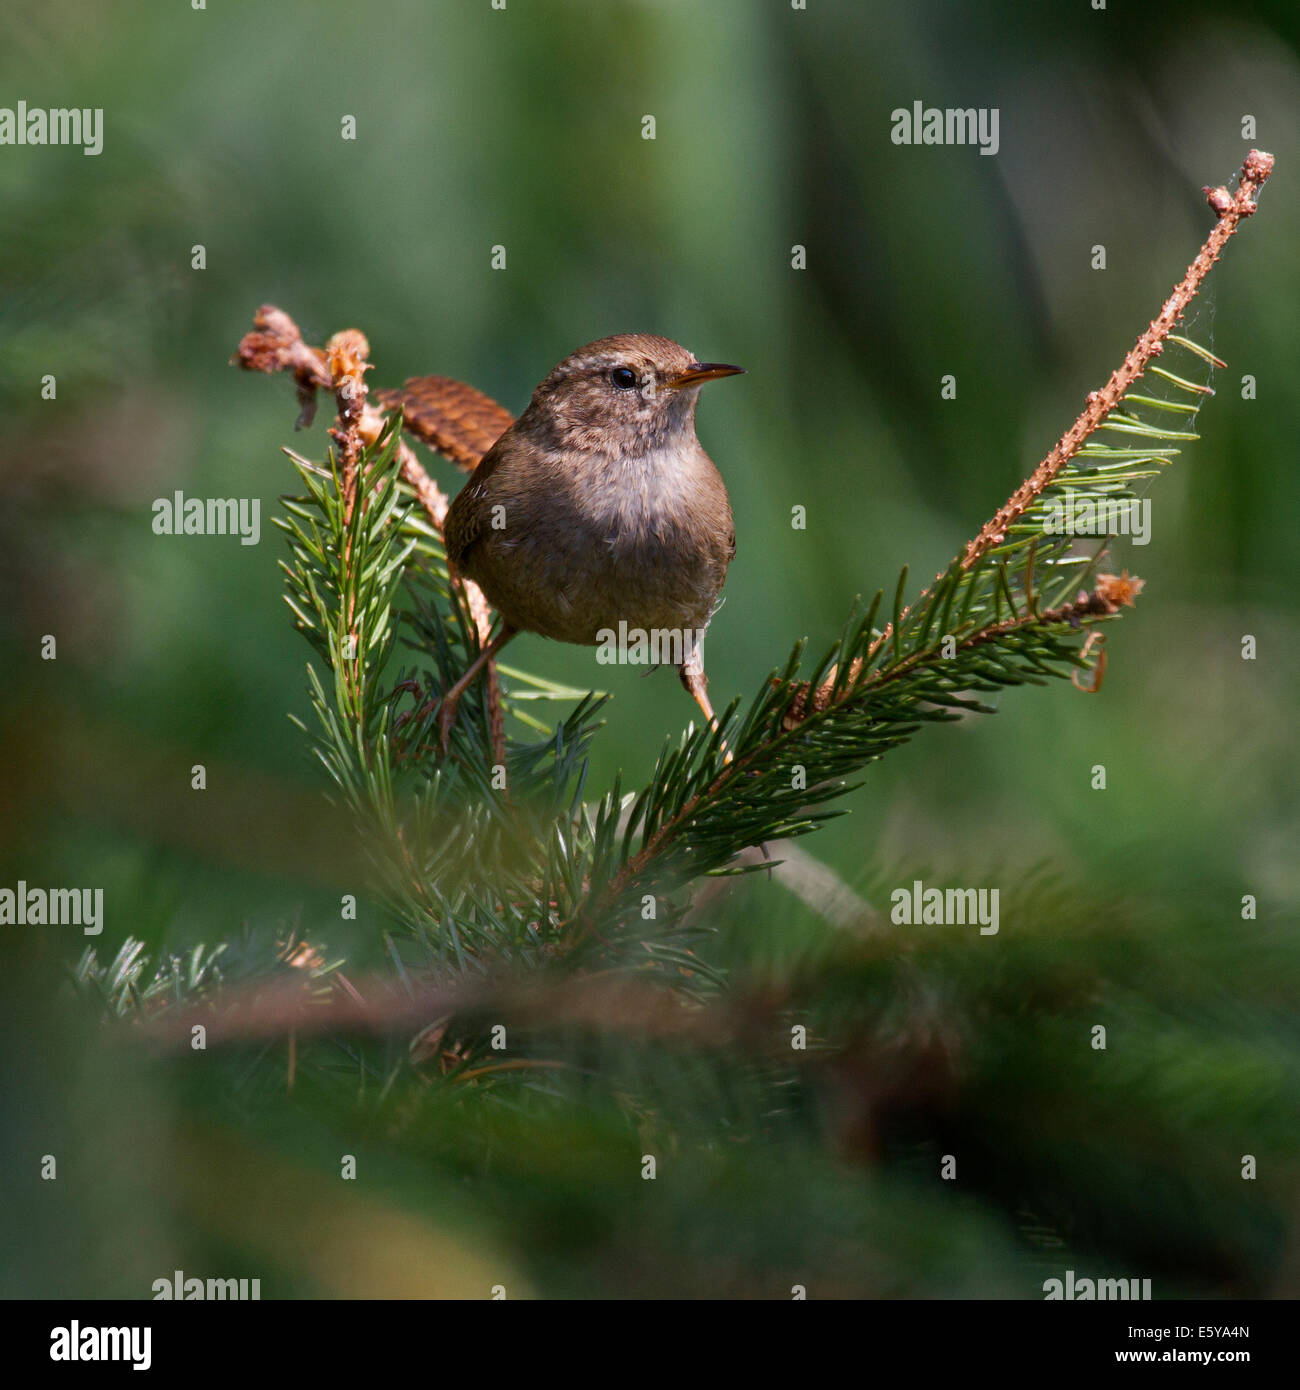 Eurasian Wren (Troglodytes troglodytes) perched on branch in pine tree - Stock Image